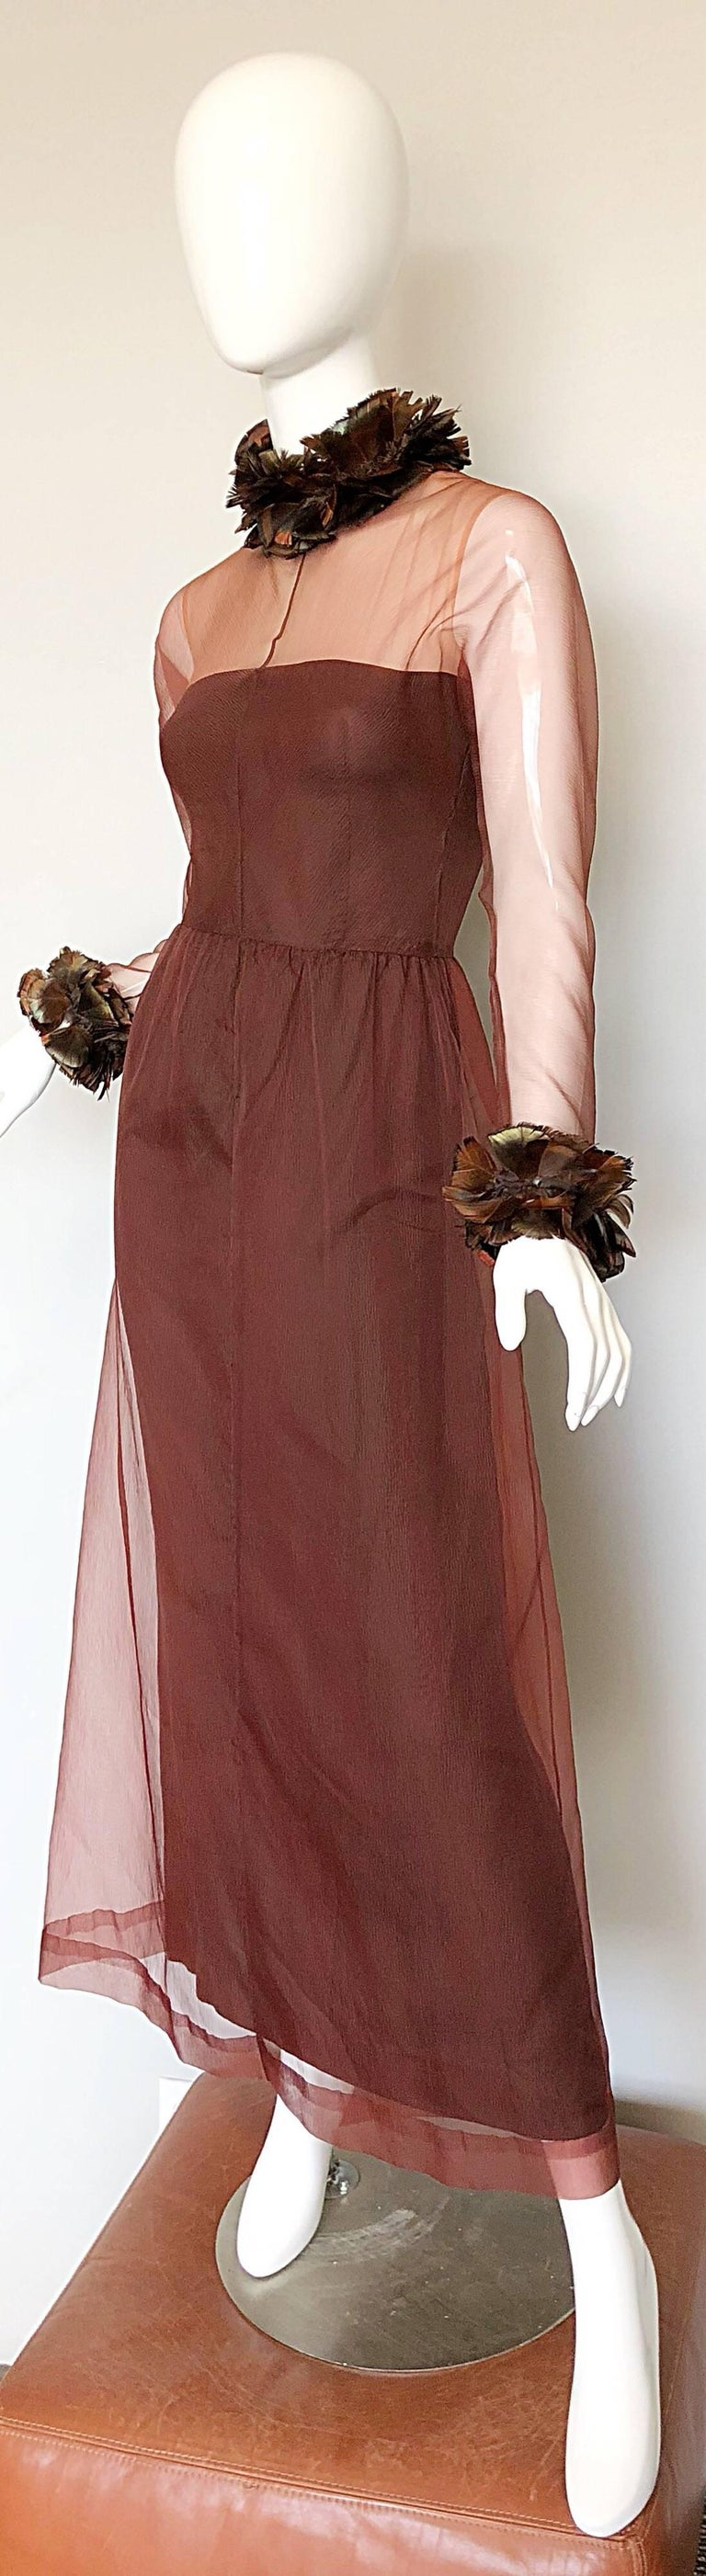 Vintage Givenchy Couture Numbered 1960s Chocolate Brown Feathered Chiffon Gown For Sale 1